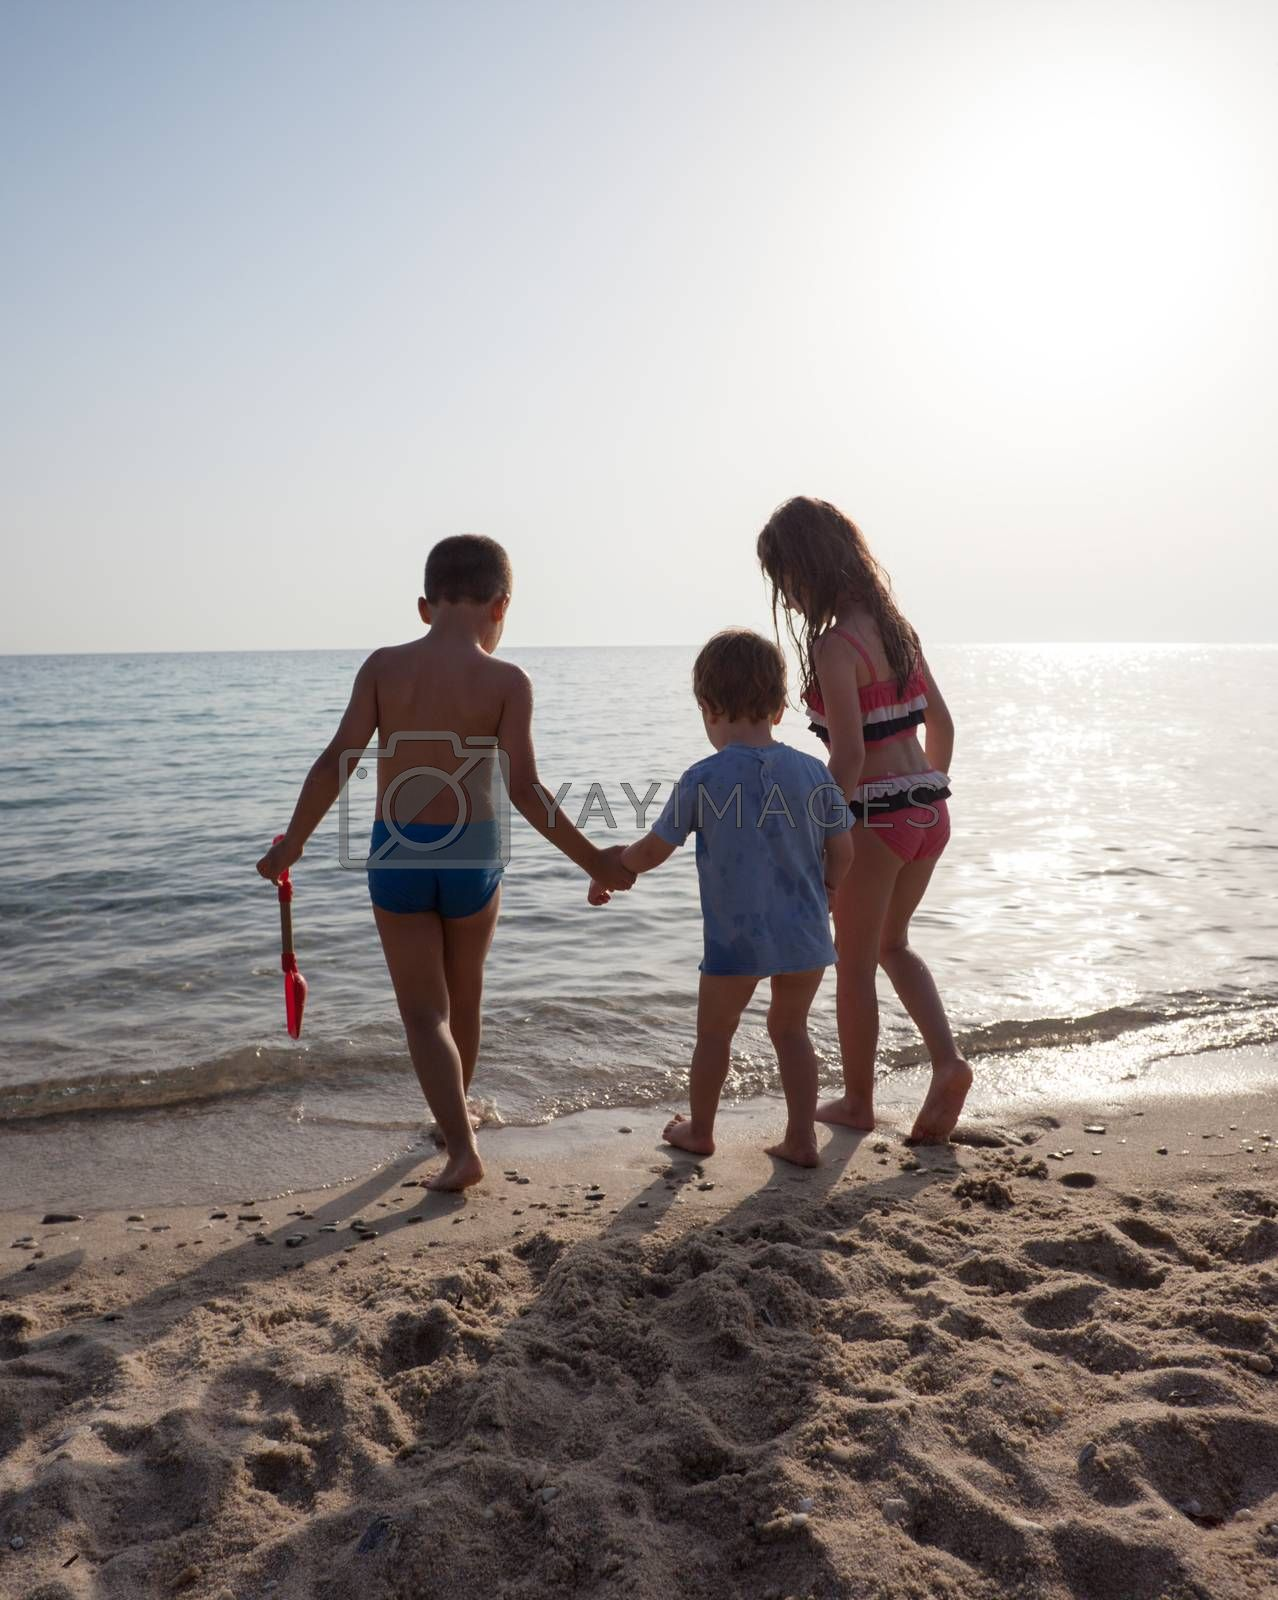 Three kids on the shore of a sea or ocean. Two are leading smaller one to the water.